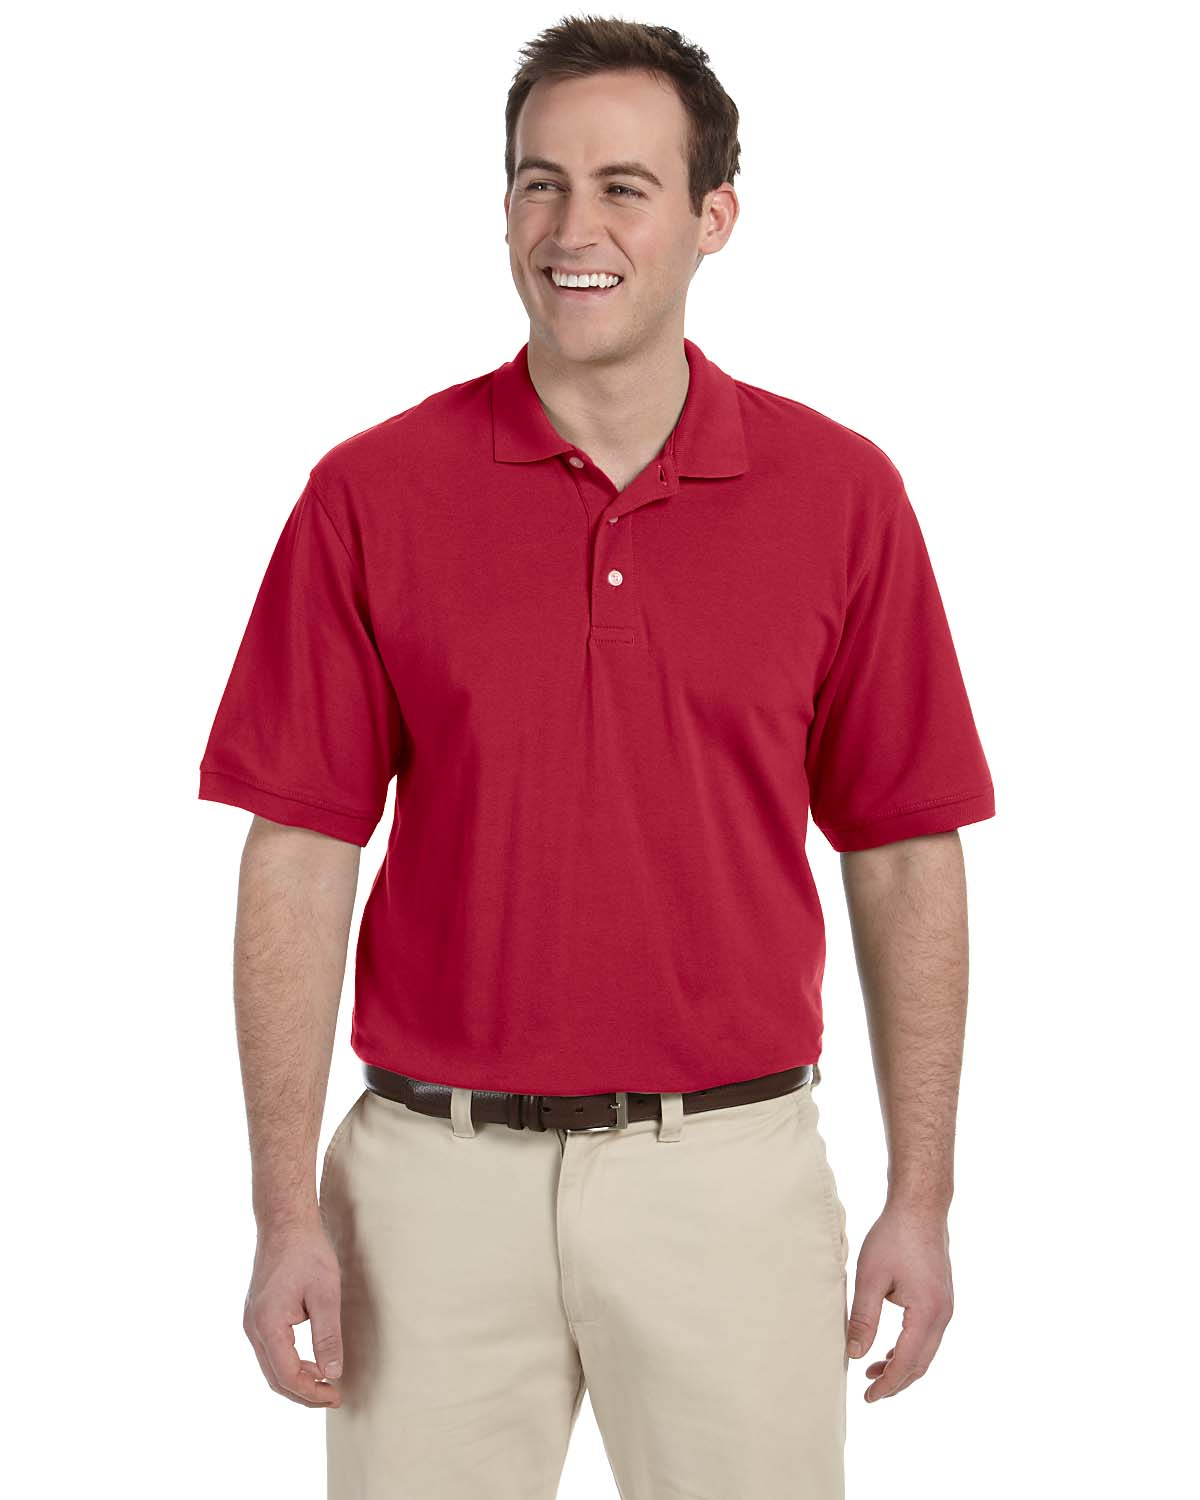 M265T Harriton Men's Tall Easy Blend Polo